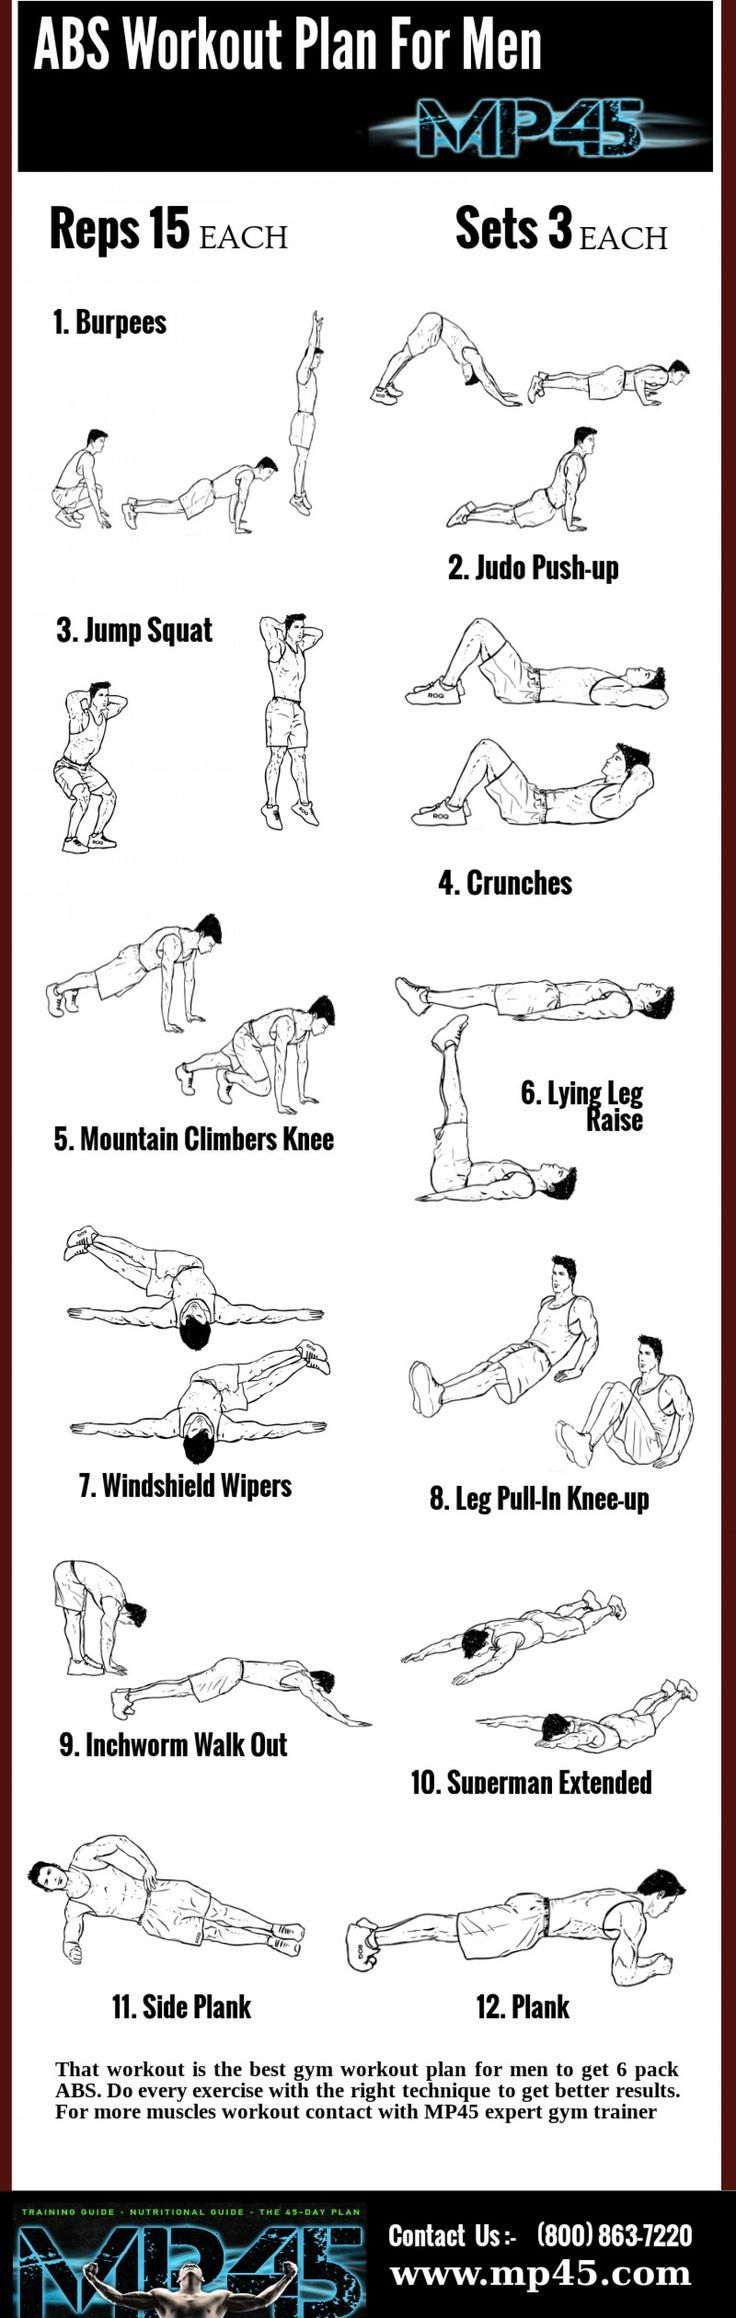 Best Gym Workout Program Meal Plan Routine Best Gym Workout Ab Workout Plan Abs Workout